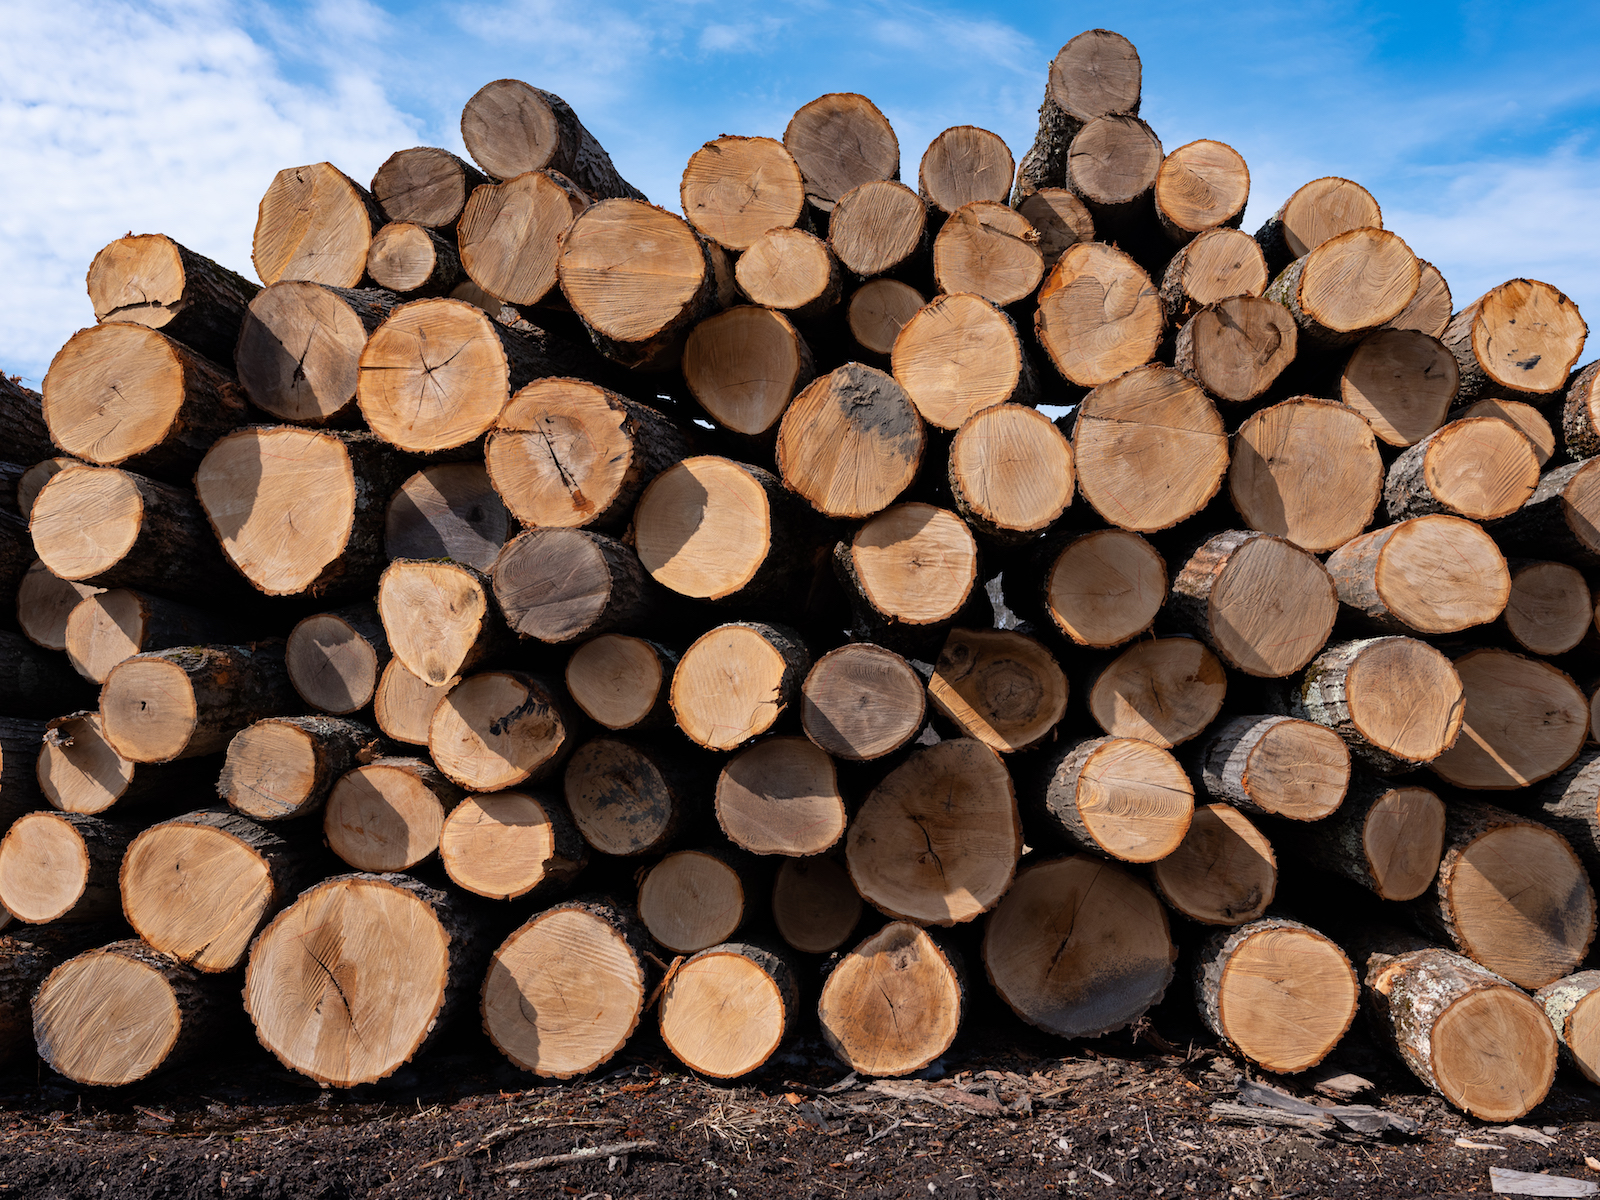 a big pile of maple logs as viewed from the cut end against a blue sky